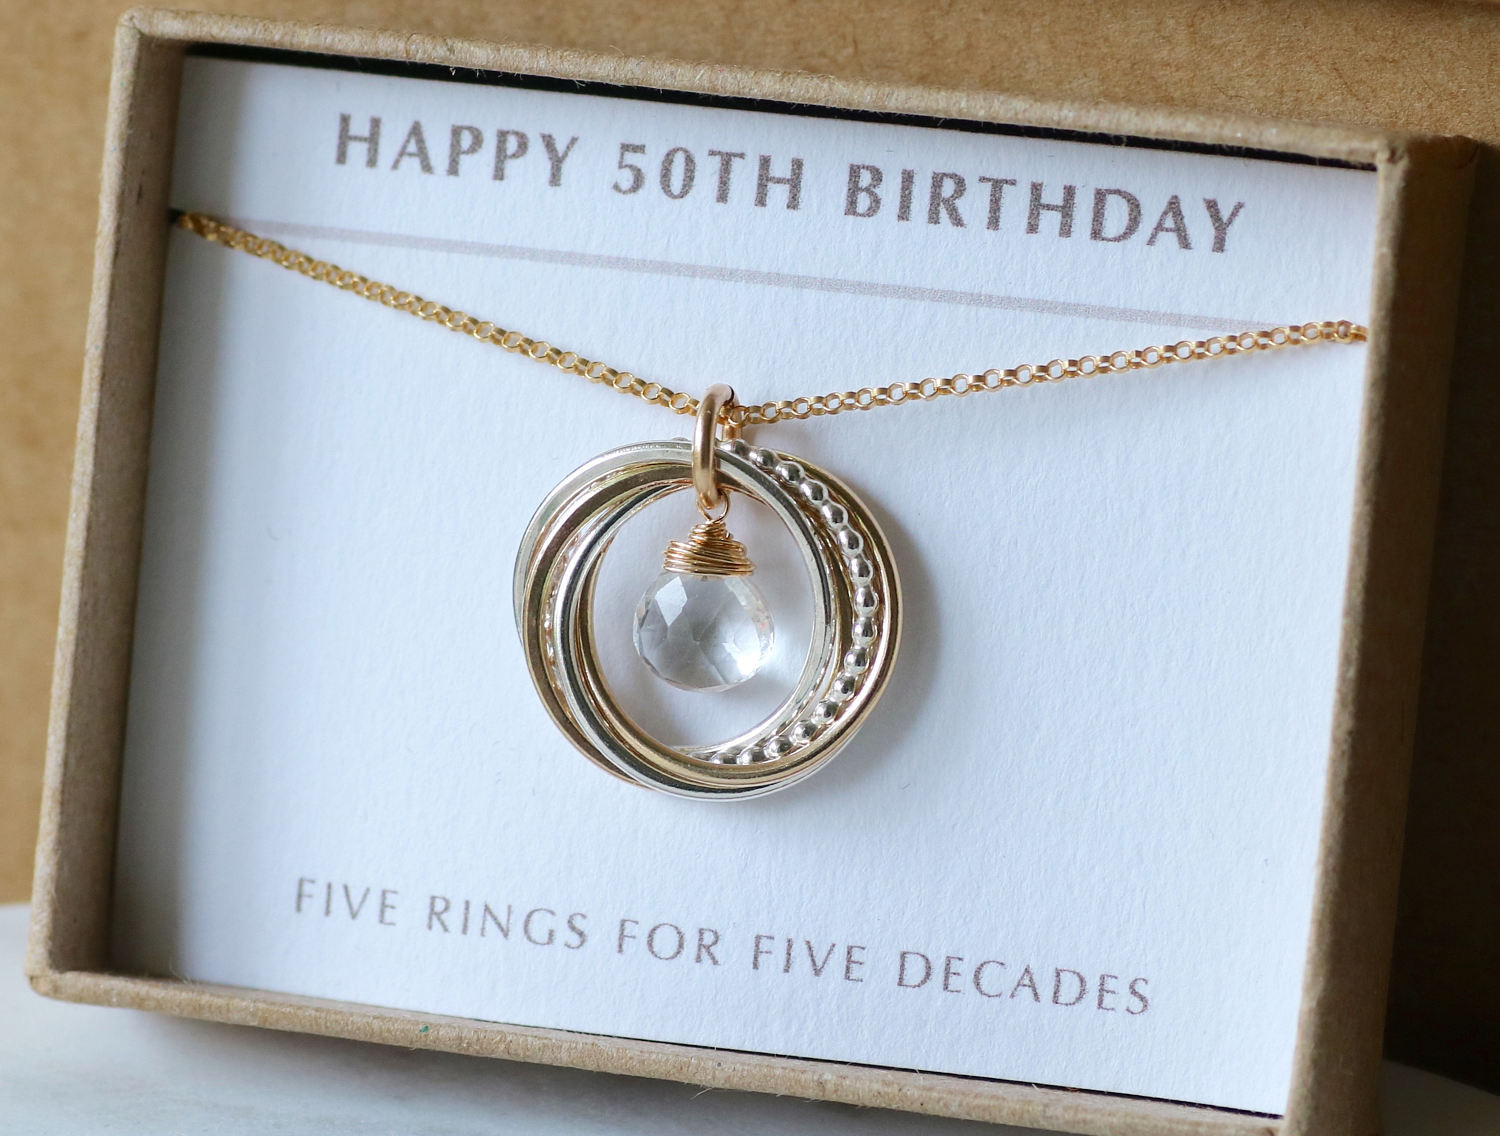 Best ideas about Best 50th Birthday Gifts For Her . Save or Pin 50th birthday t for her April birthday t April Now.